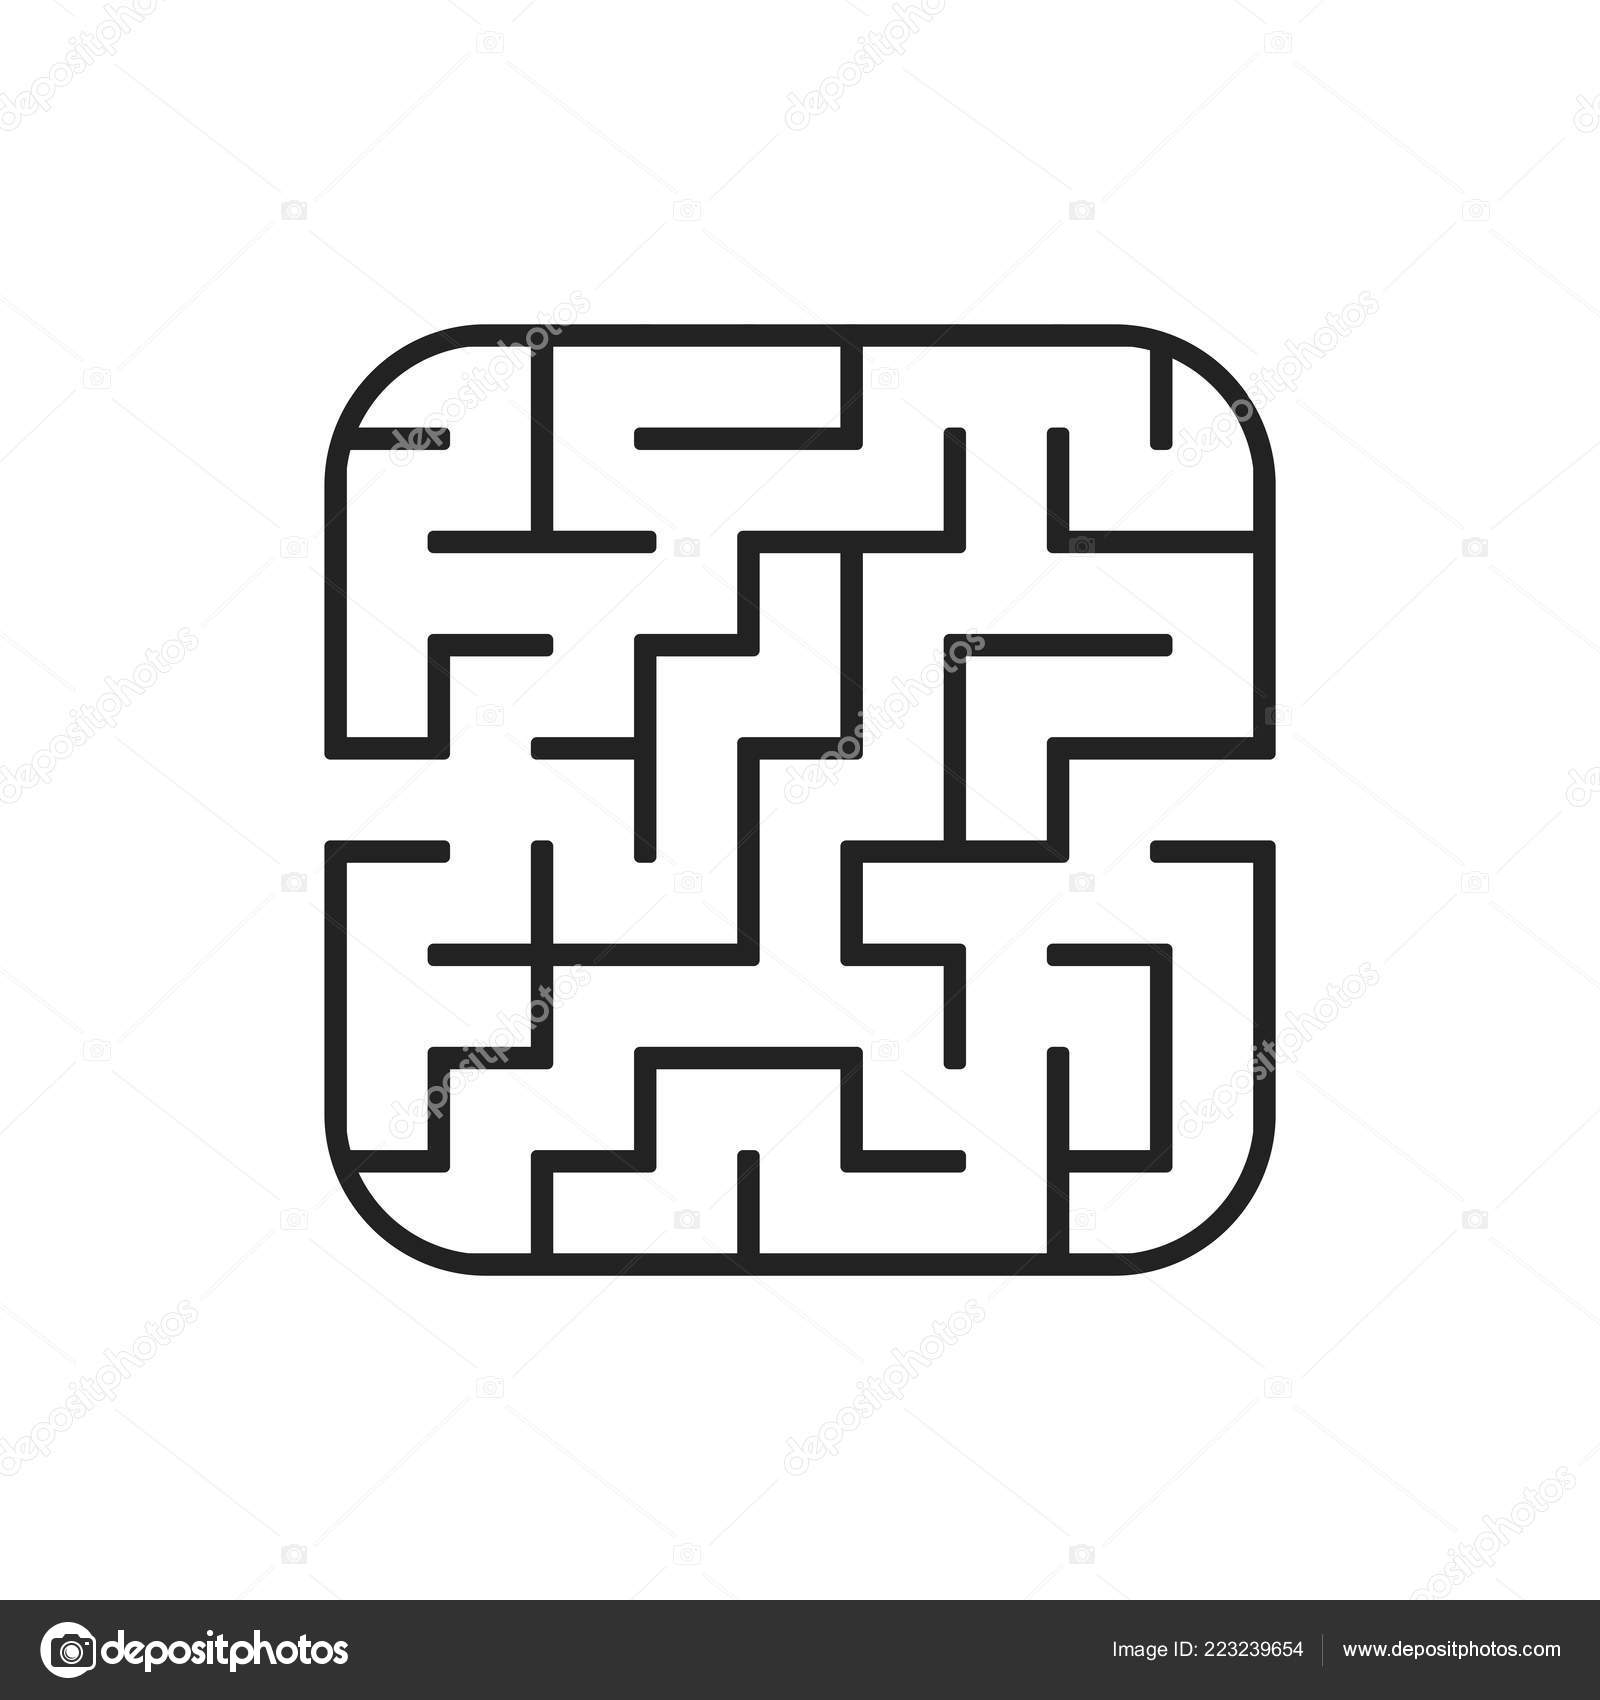 Abstract Square Maze Easy Level Difficulty Game Kids Puzzle